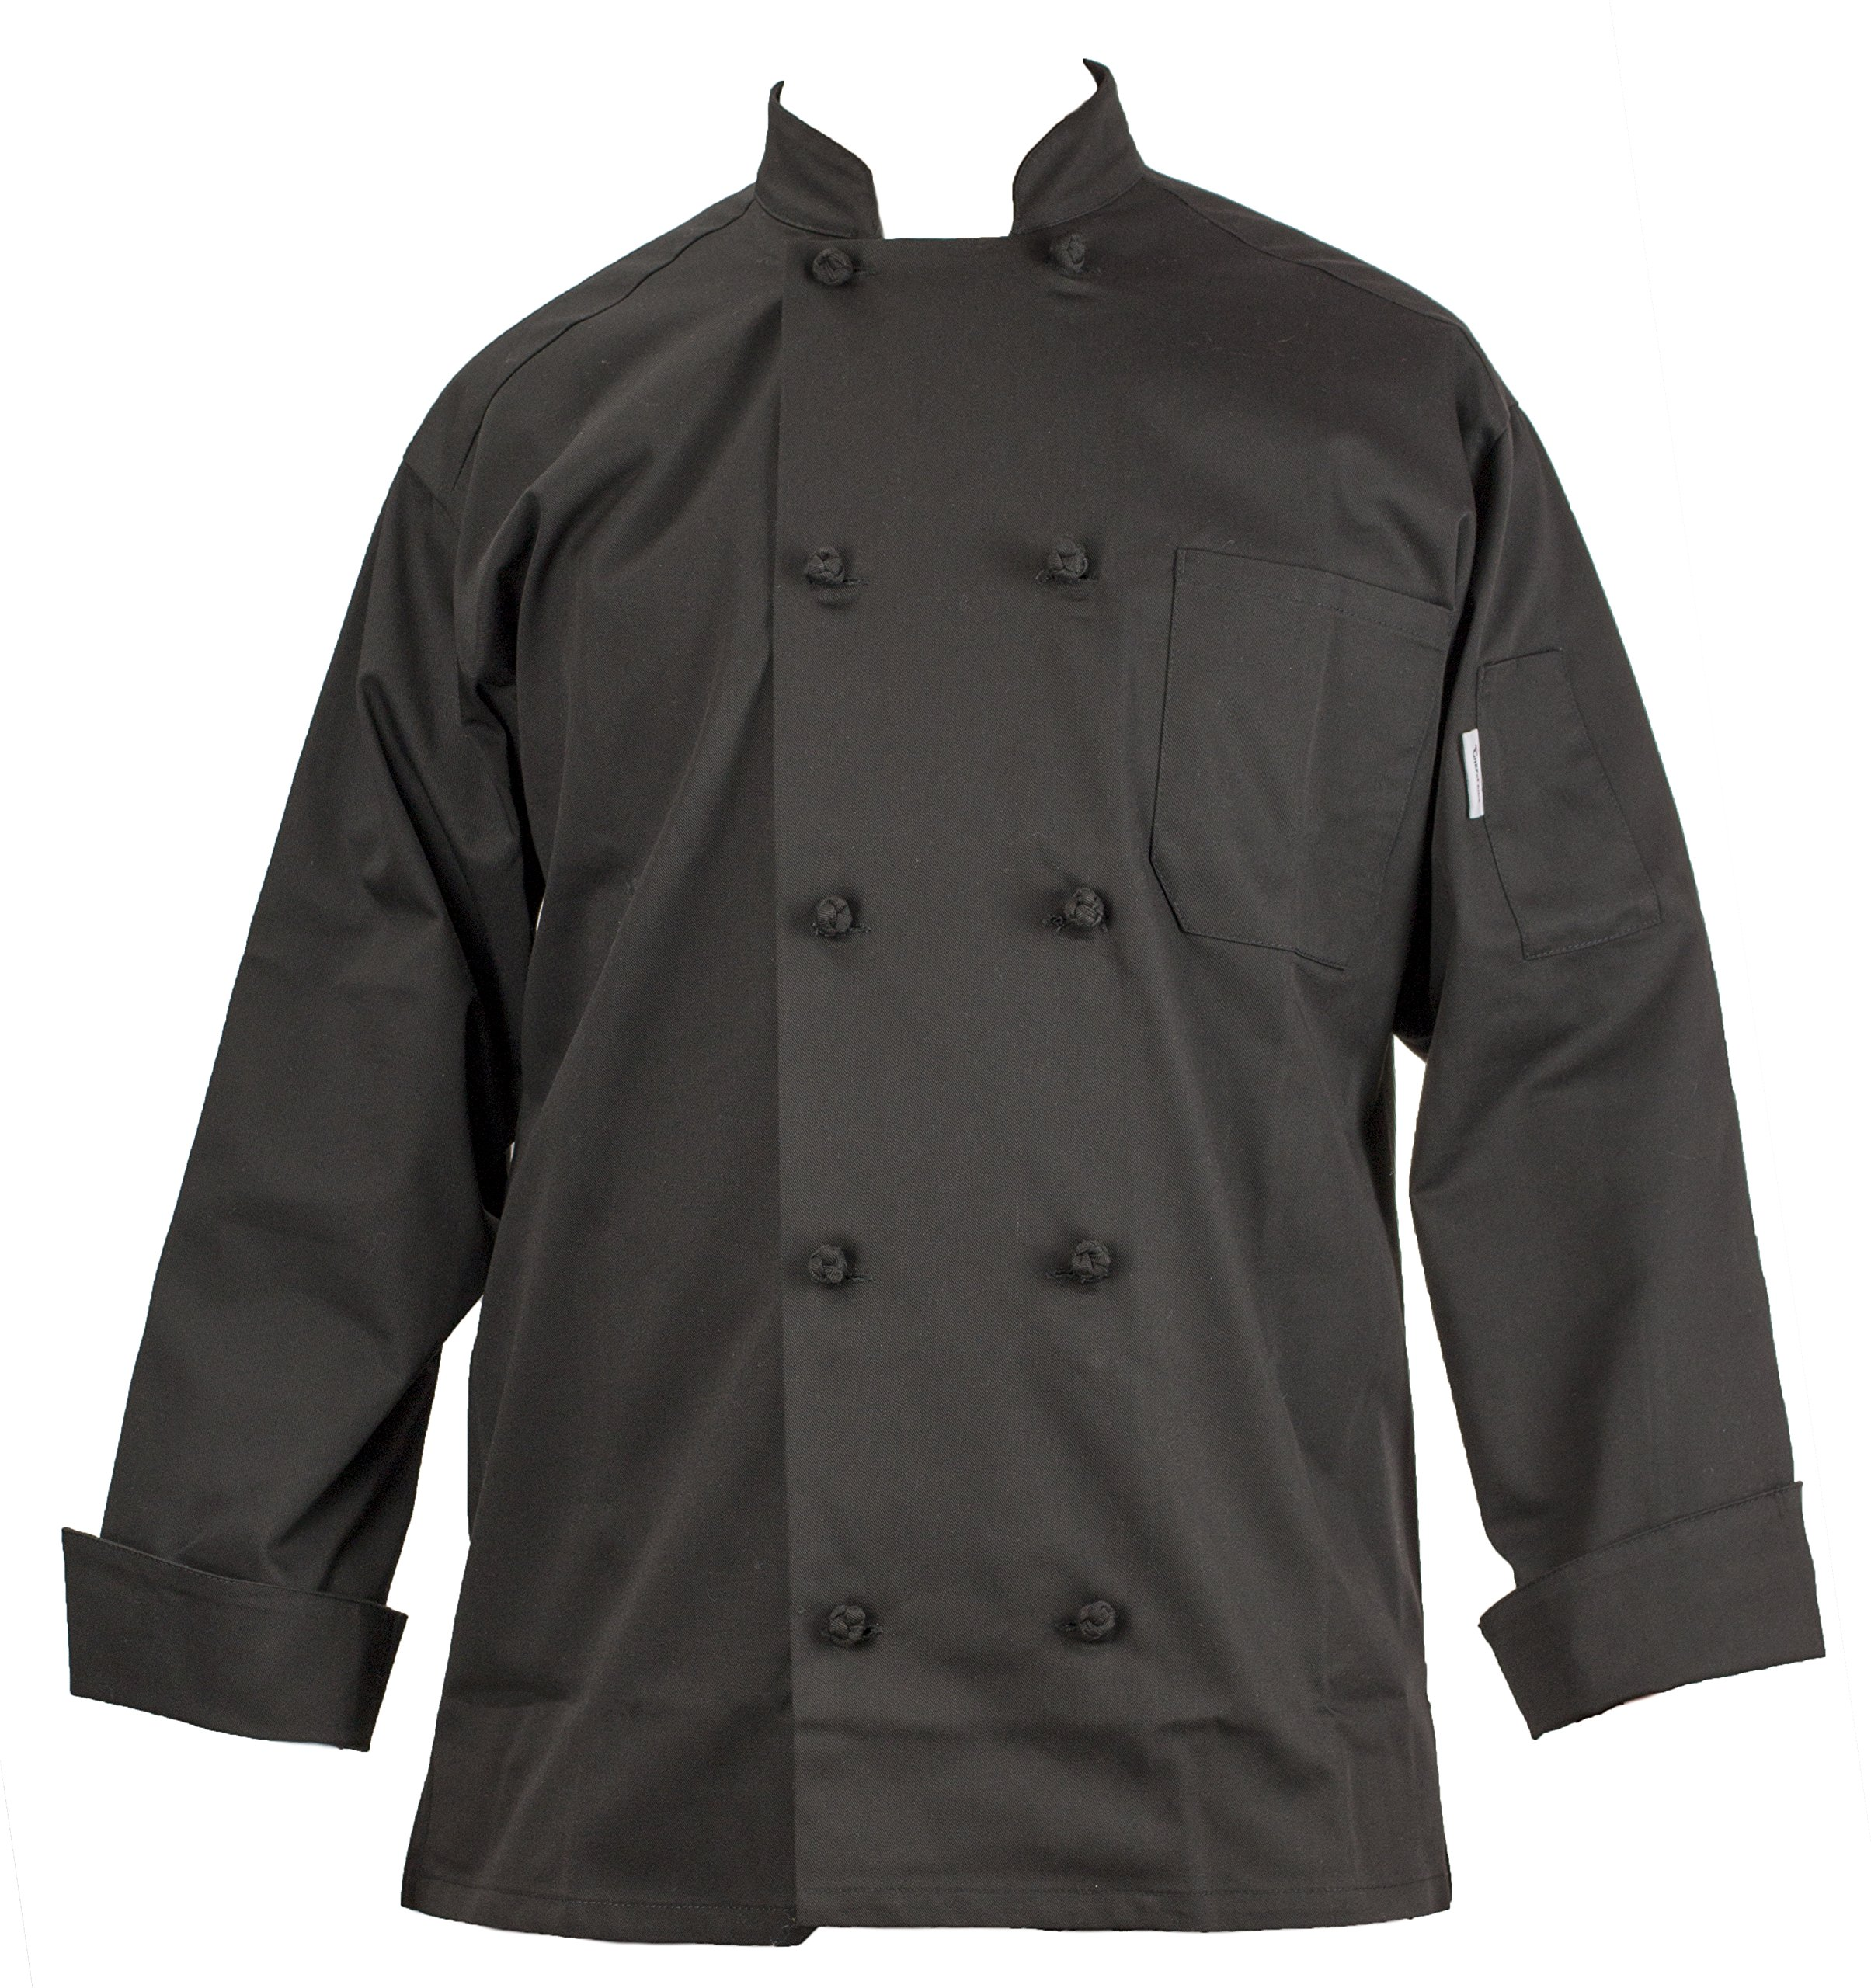 Chef's Pride Unisex Chef Coat – Double Breasted Long Sleeve Chef Jacket with Cloth Knotted Buttons- Poly Cotton Blend